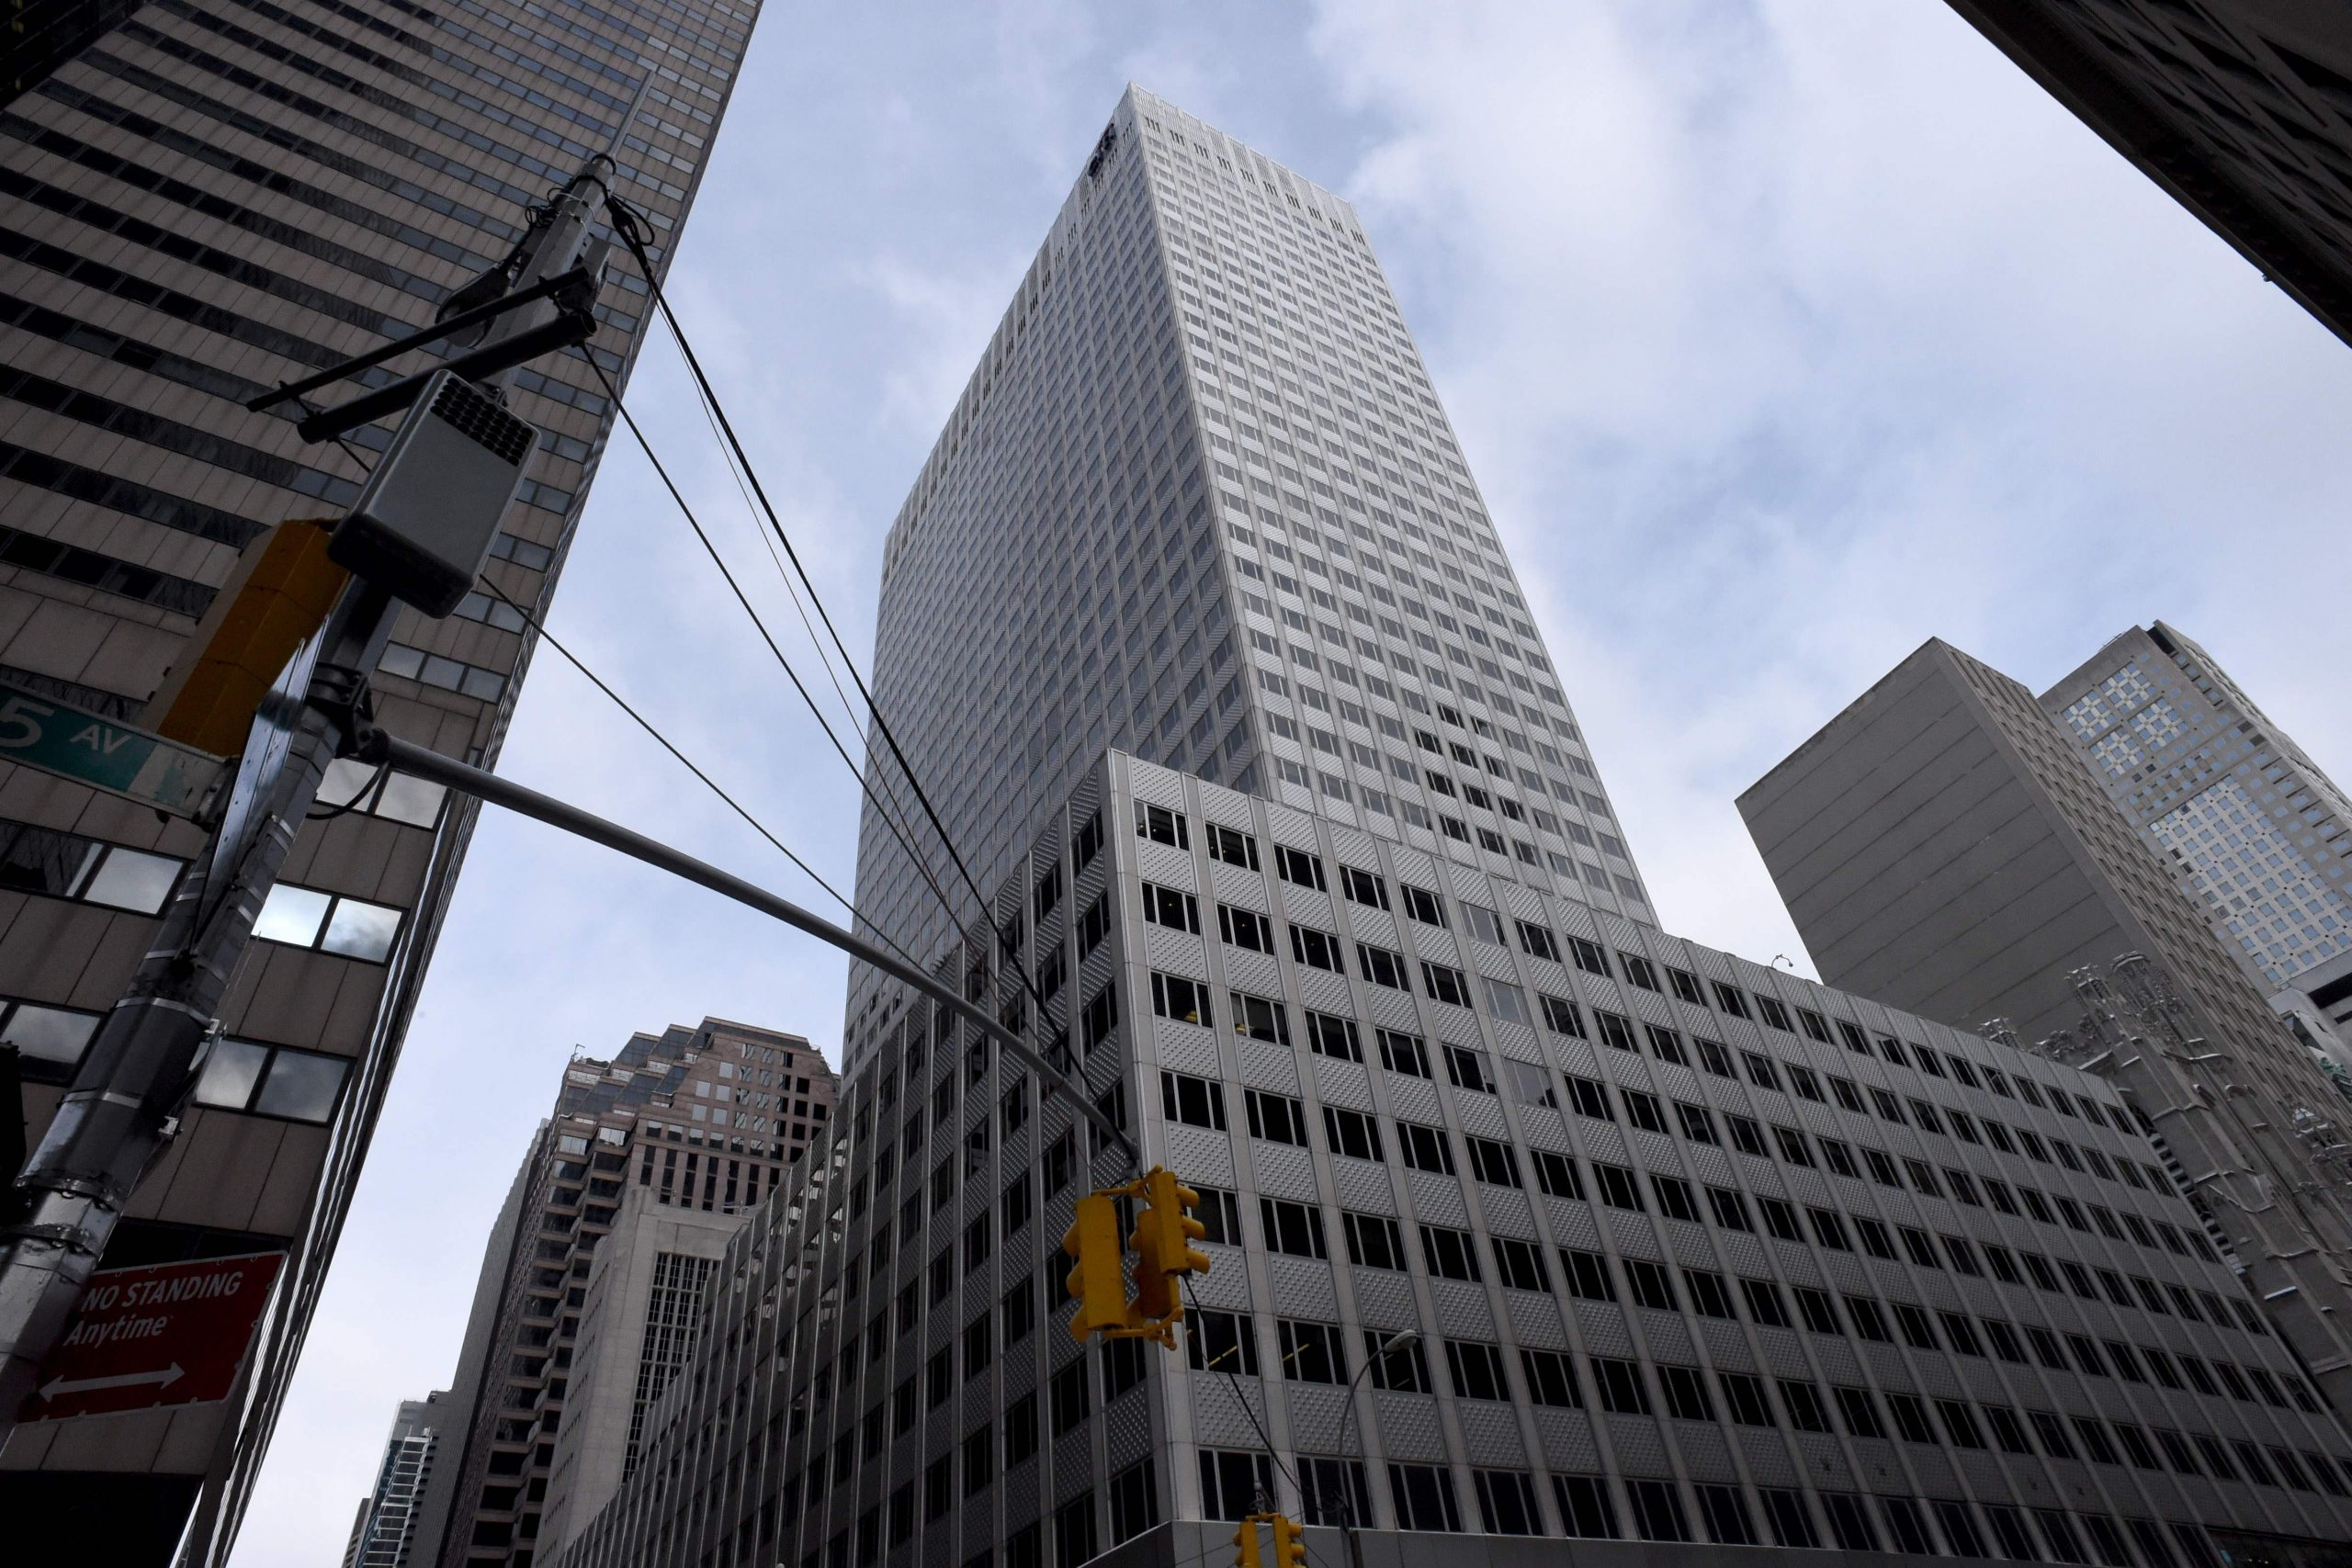 The Kushner Companies' deal with Anbang Insurance Group for the 41-story tower at 666 Fifth Avenue is worth $4 billion, which real estate experts say is unusually favorable toward the Kushners.